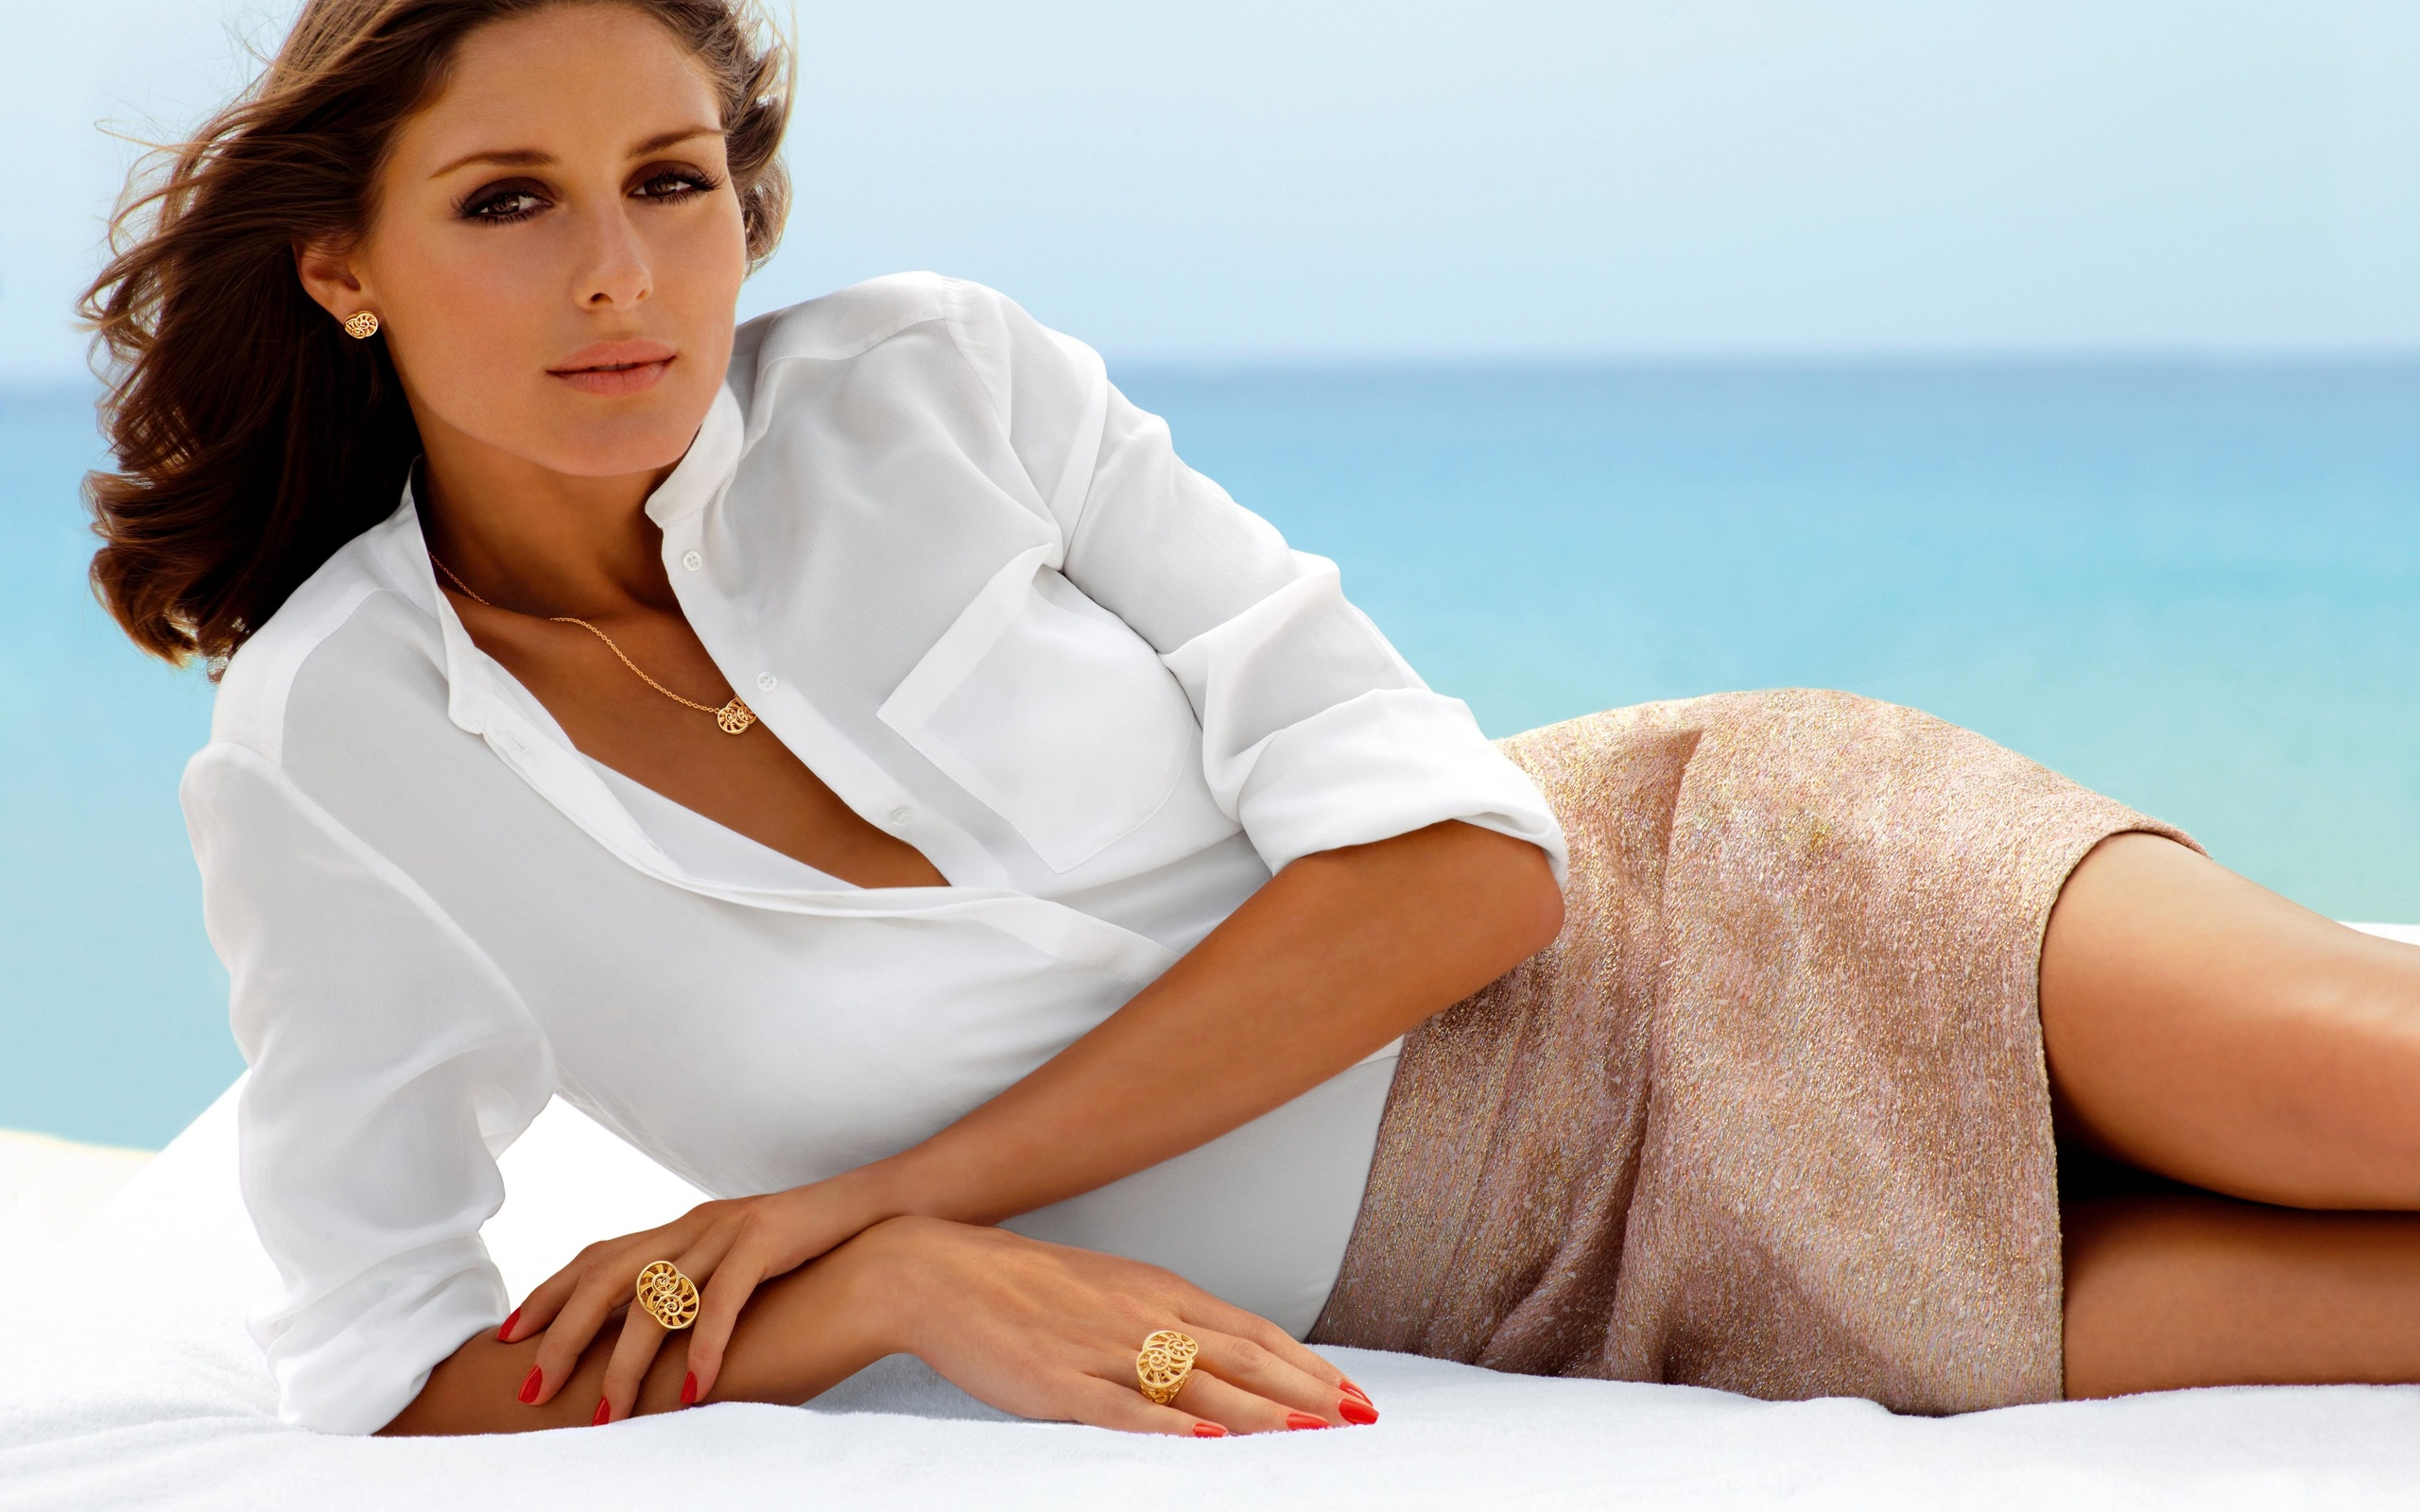 Images of Olivia Palermo | 2560x1600